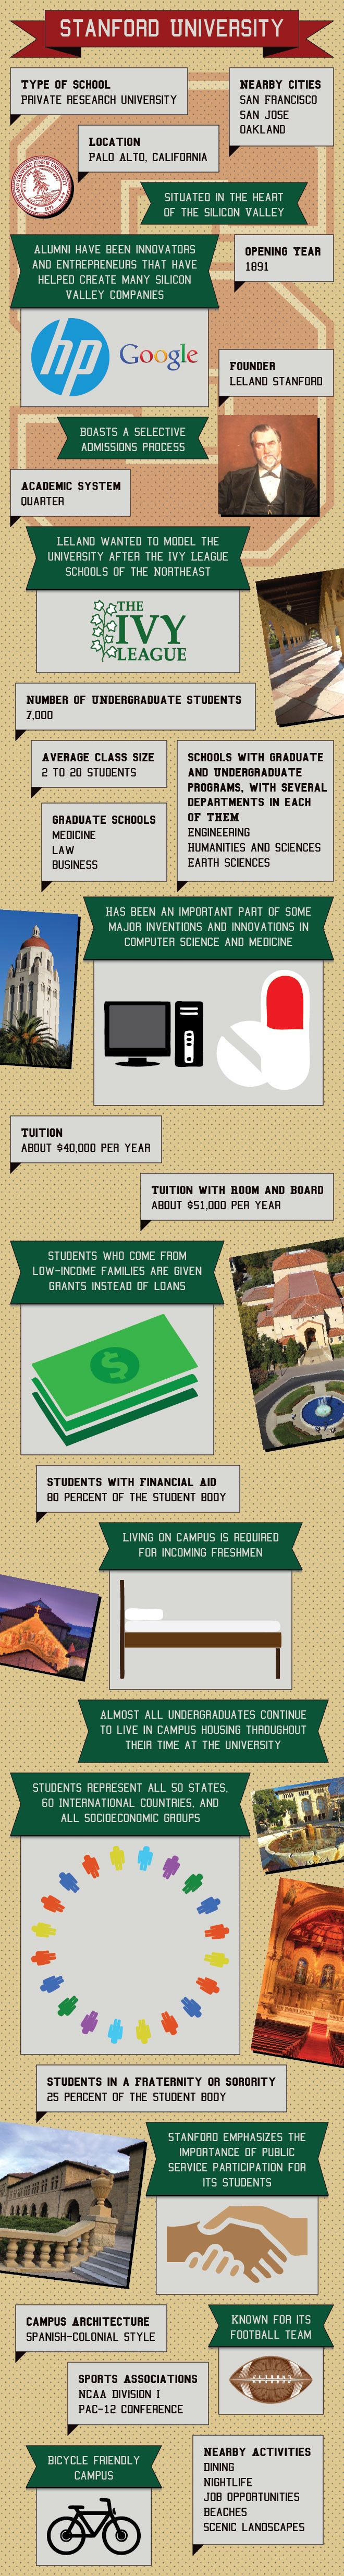 Some quick facts about the #StanfordUniversity, #California - In an Infographic